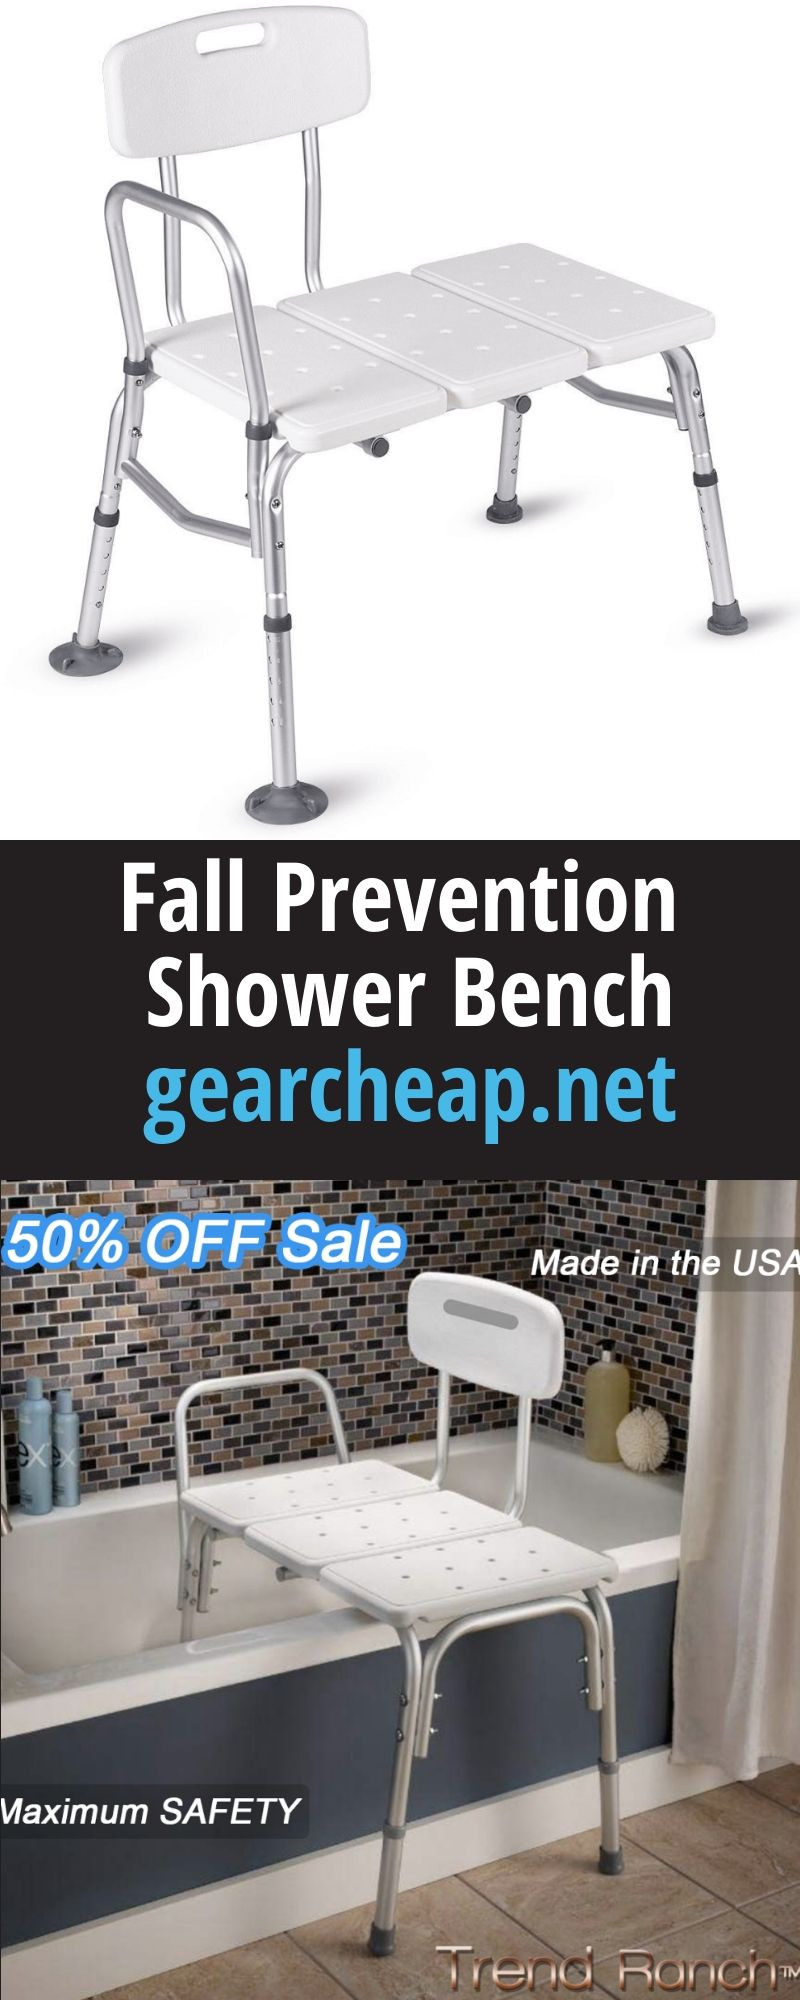 Fall Prevention Shower Bench in 2020 Shower bench, Fall